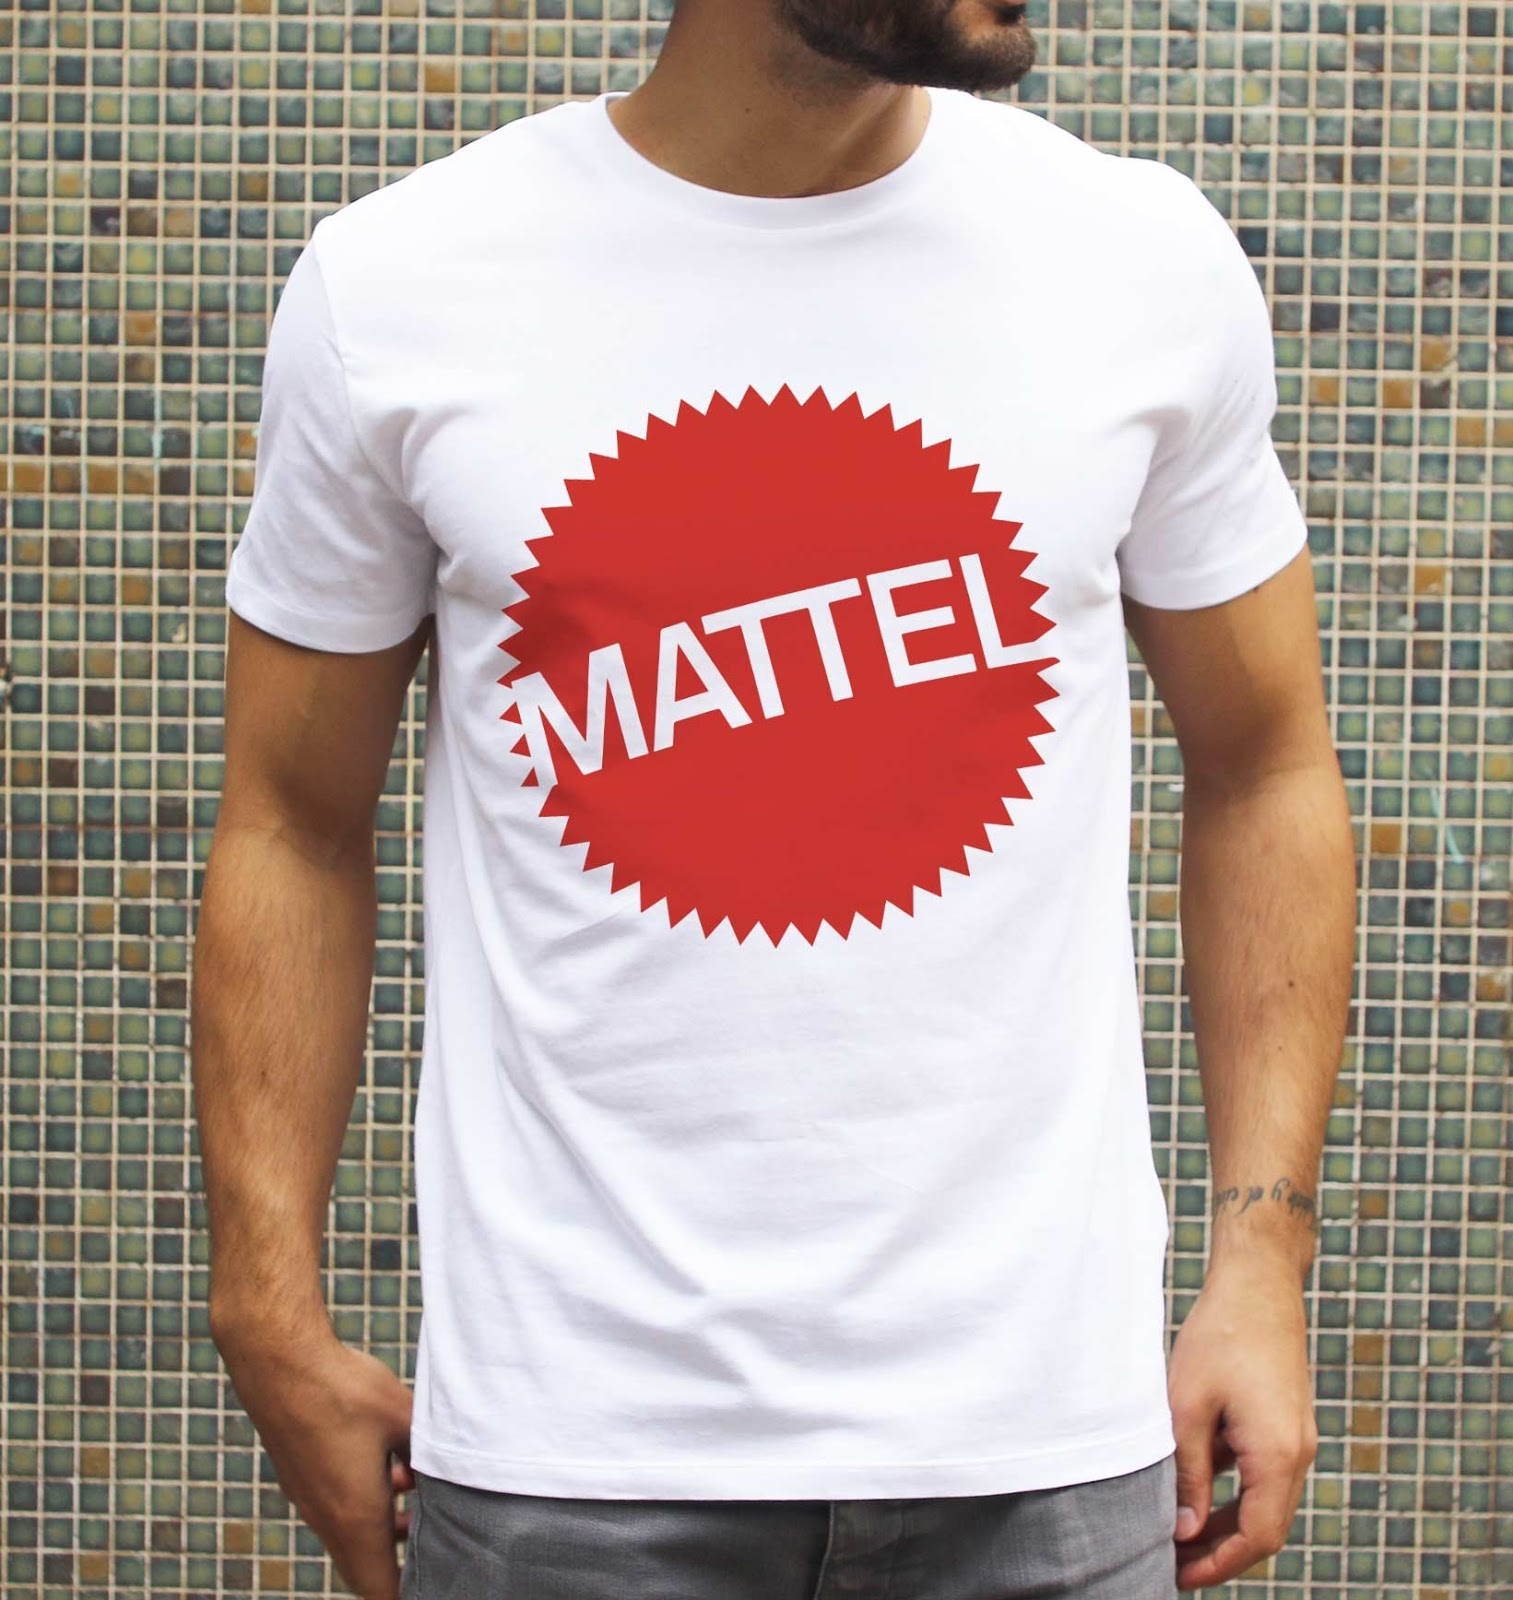 https://grafitee.co/tshirts/mattel-t-shirt